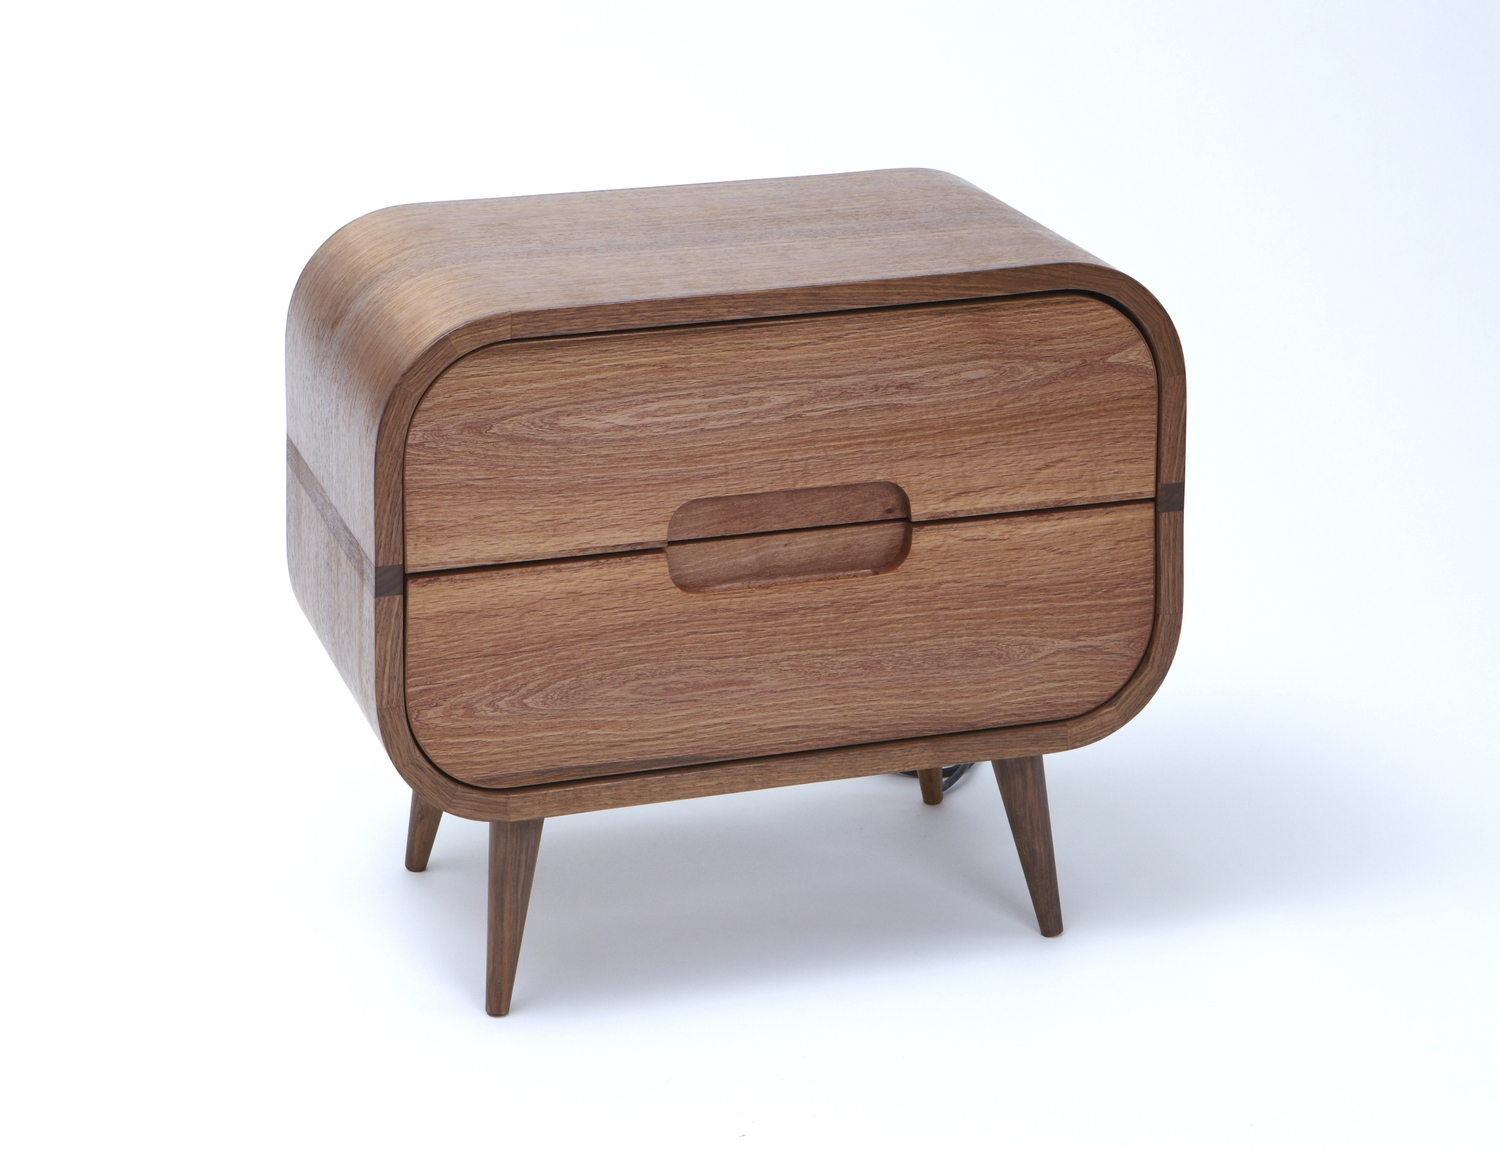 1950's inspired bedside cabinet made by Angus.